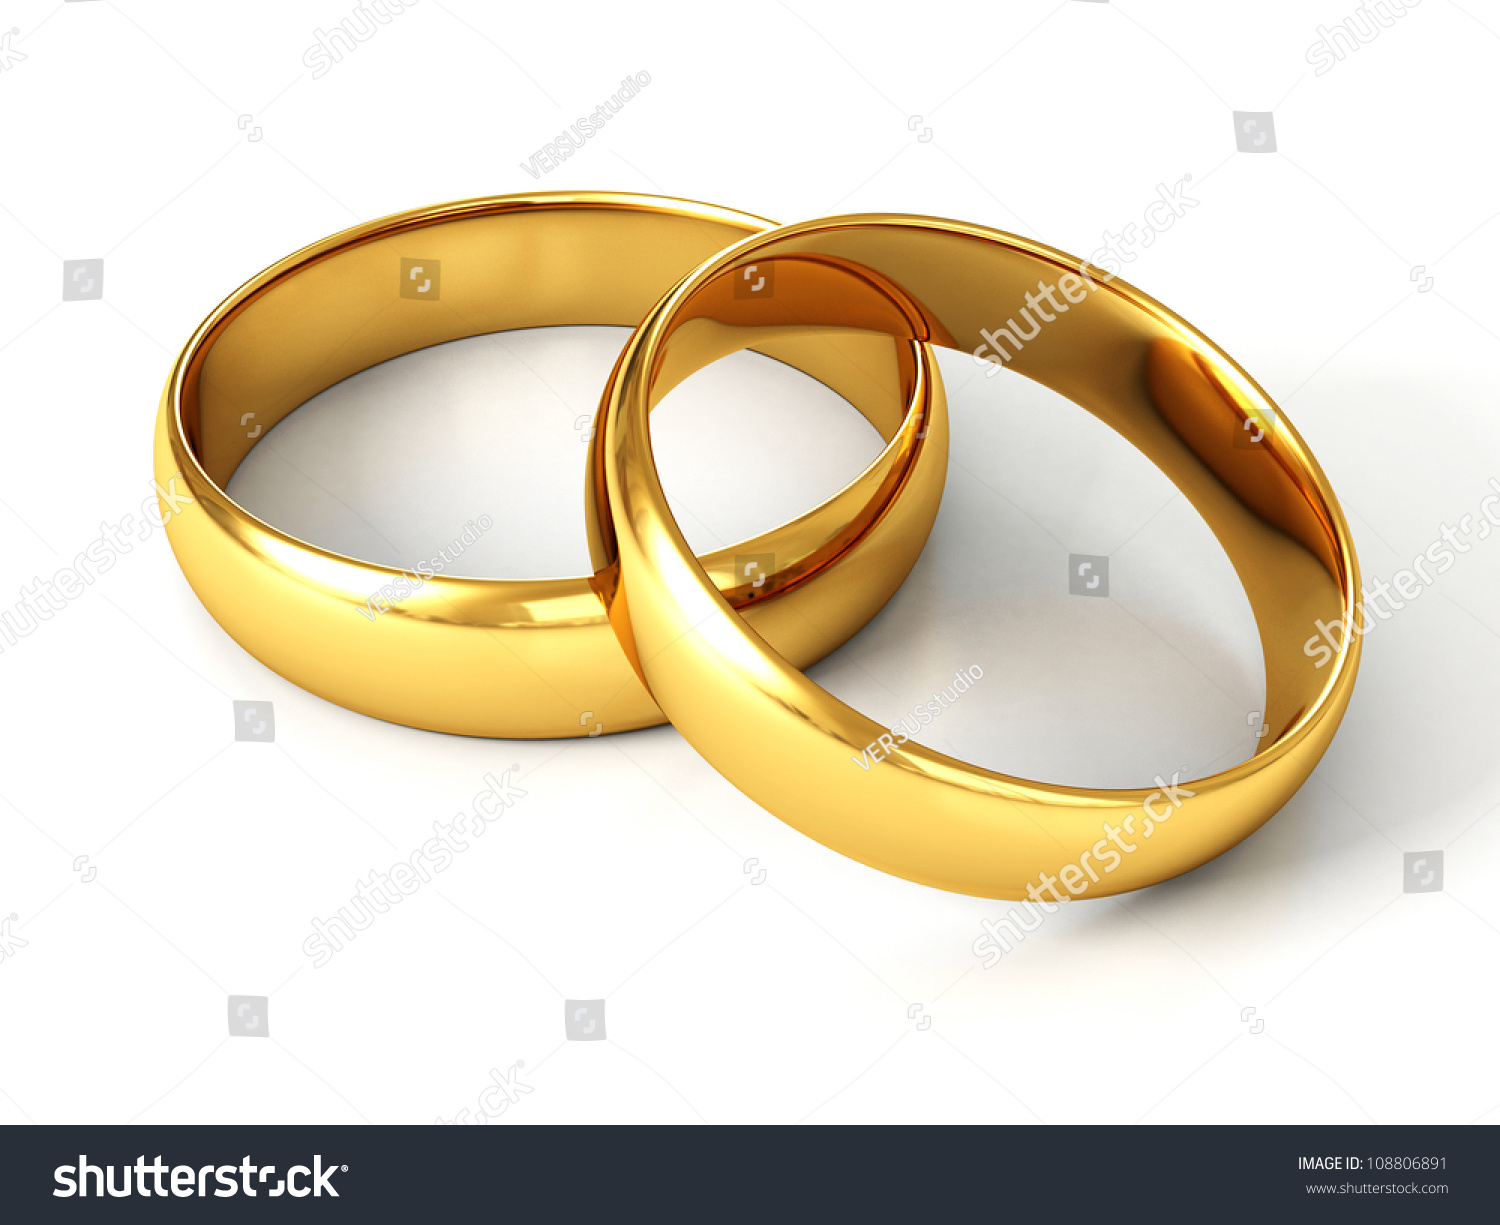 couple of gold wedding rings on white background - Wedding Rings For Couples